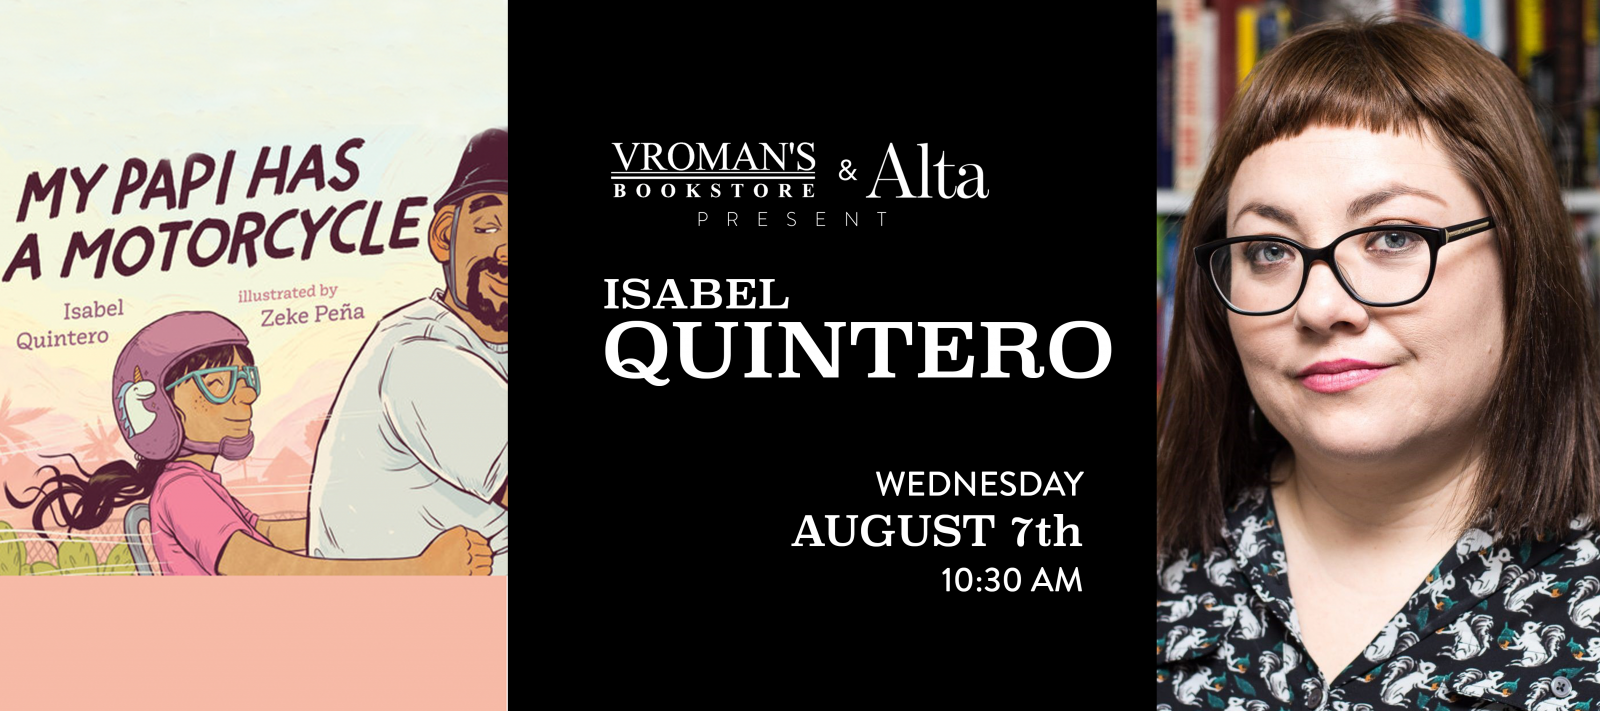 Isabel Quintero book signing Wednesday August 7th at 10:30am